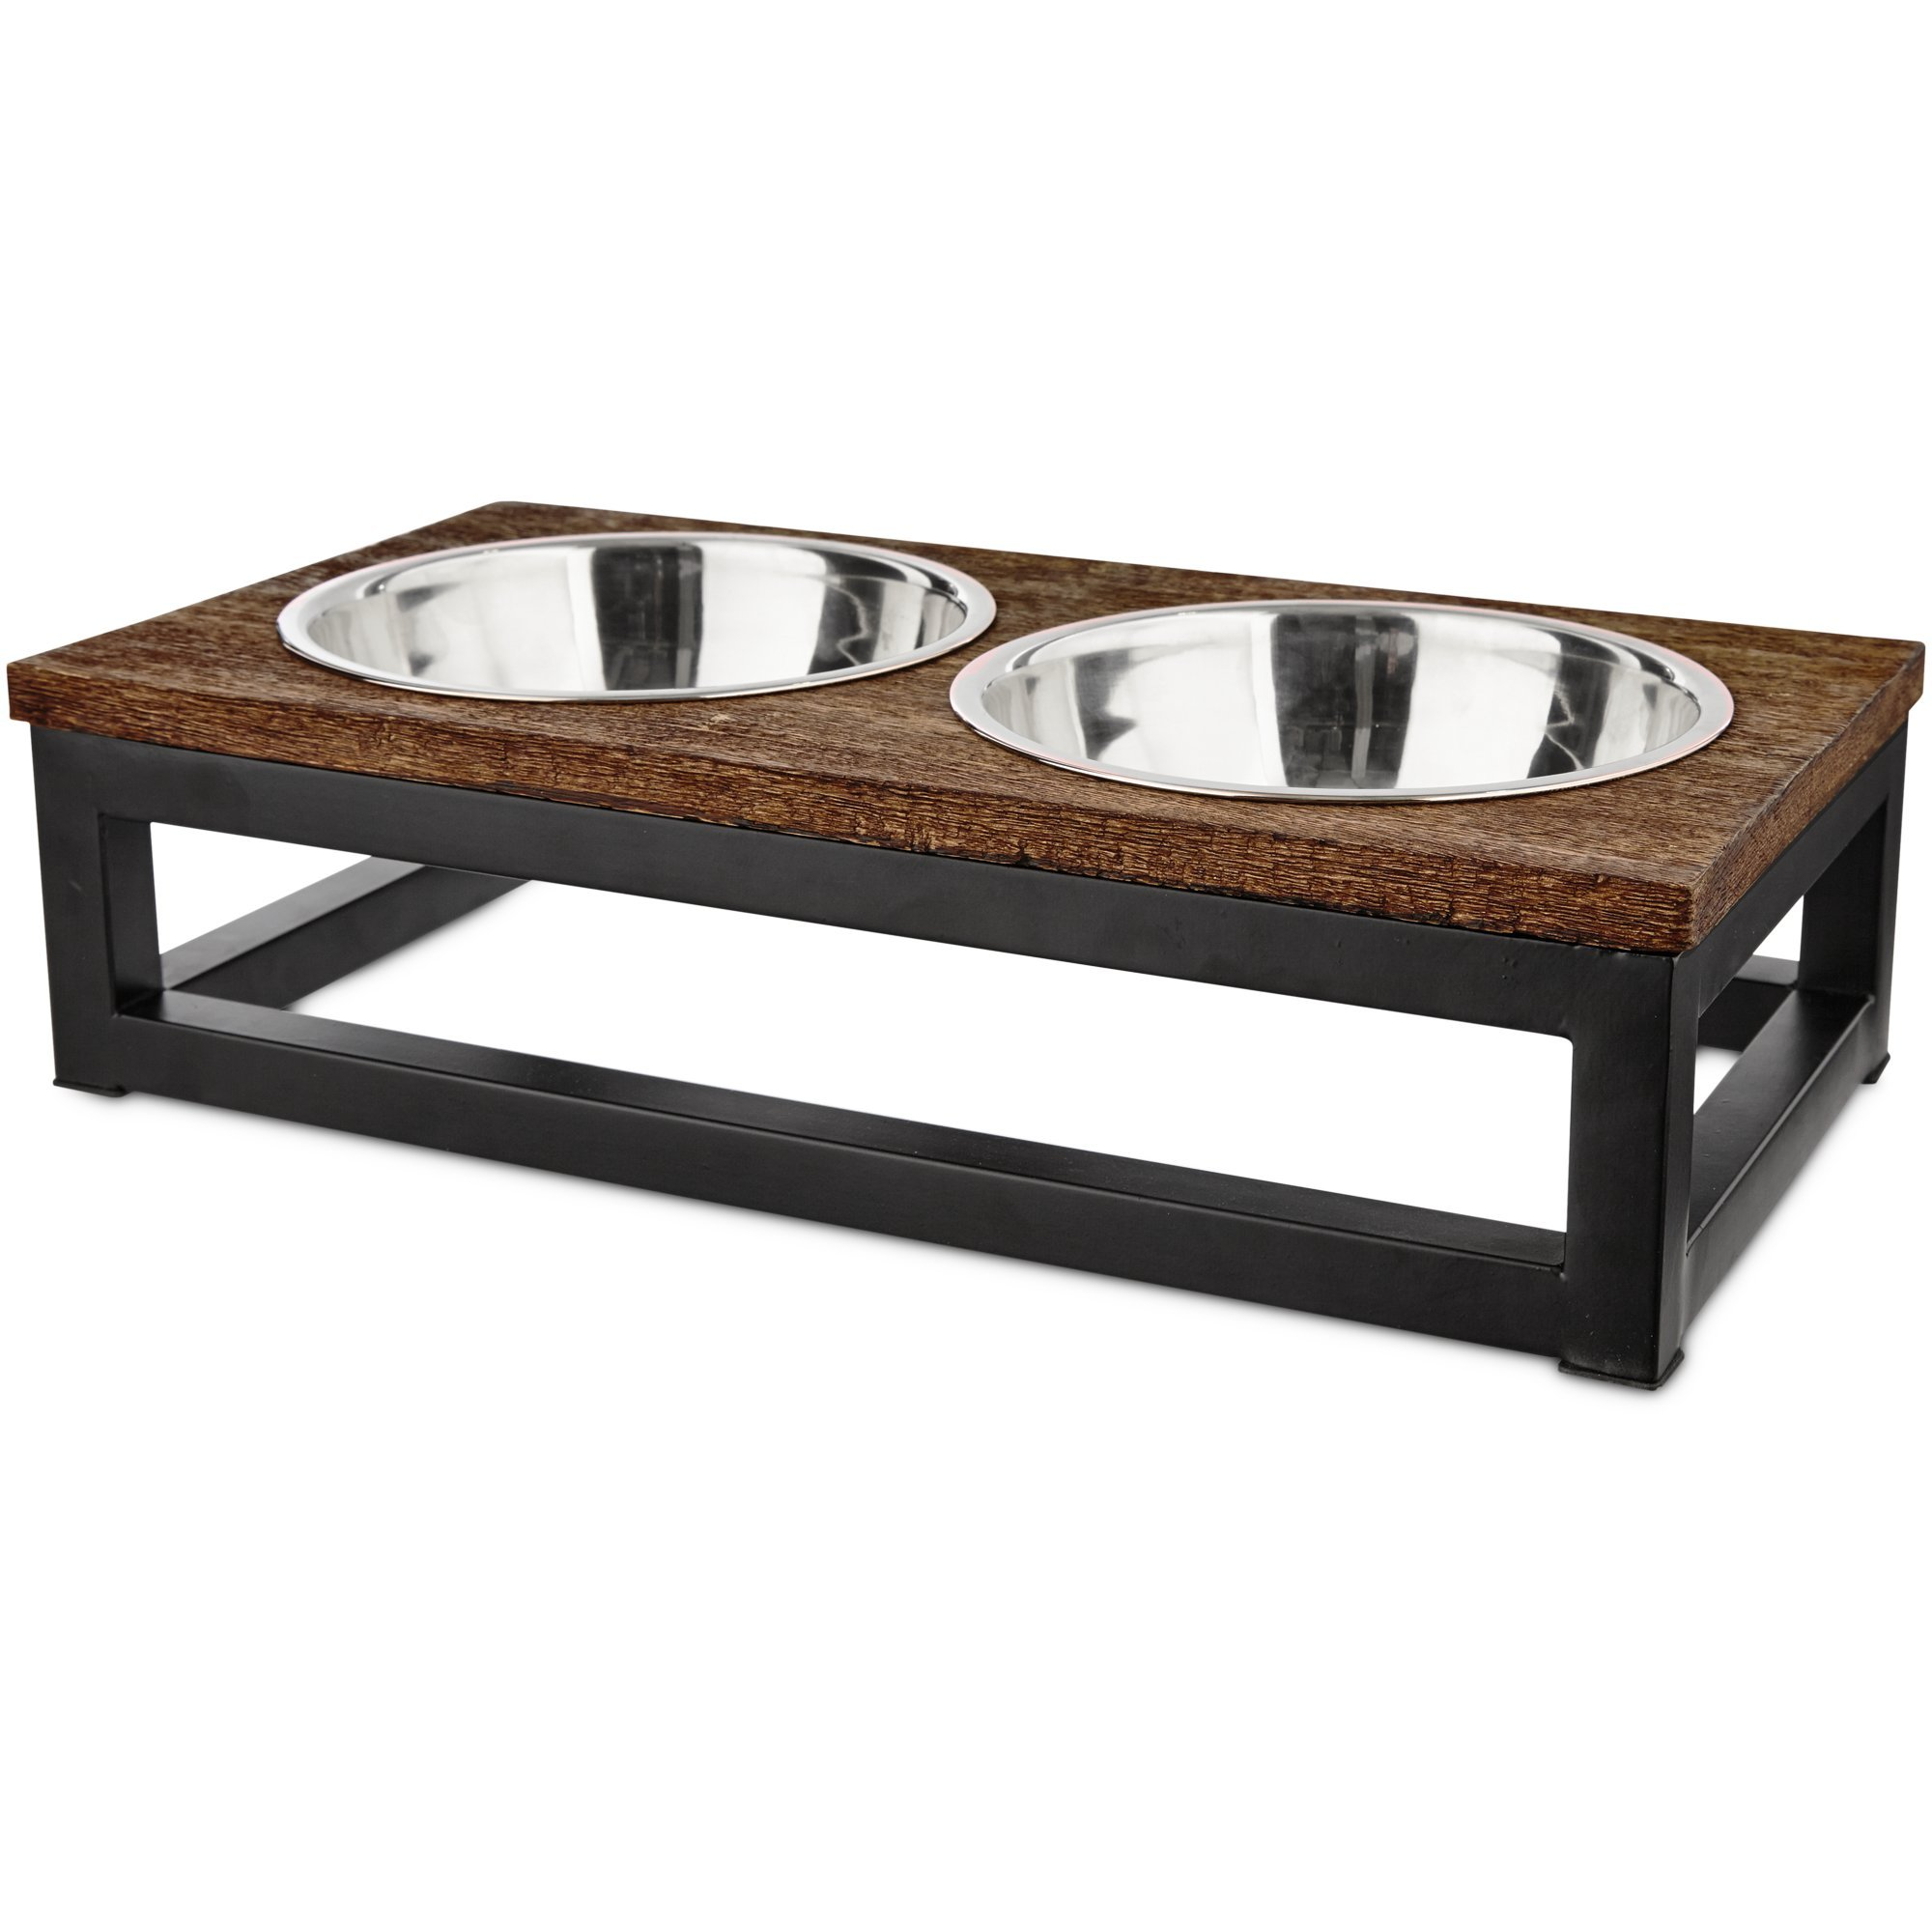 HARMONY Elevated Dog Bowl Double Diner, 3 Cup, Medium by HARMONY